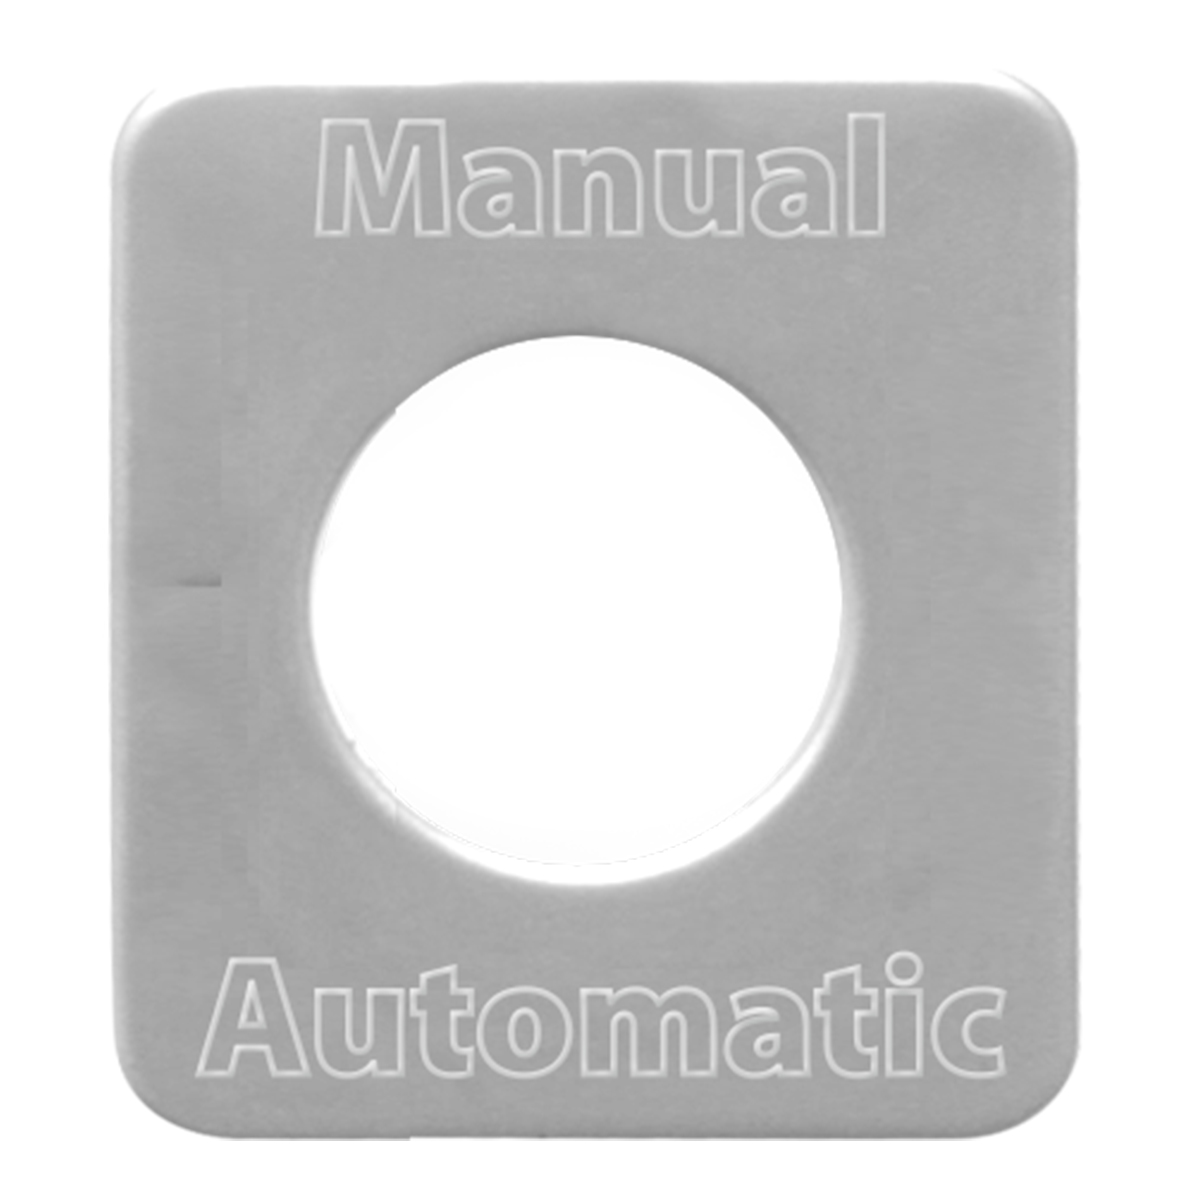 68583 Stainless Steel Manual Automatic Switch Plate for KW